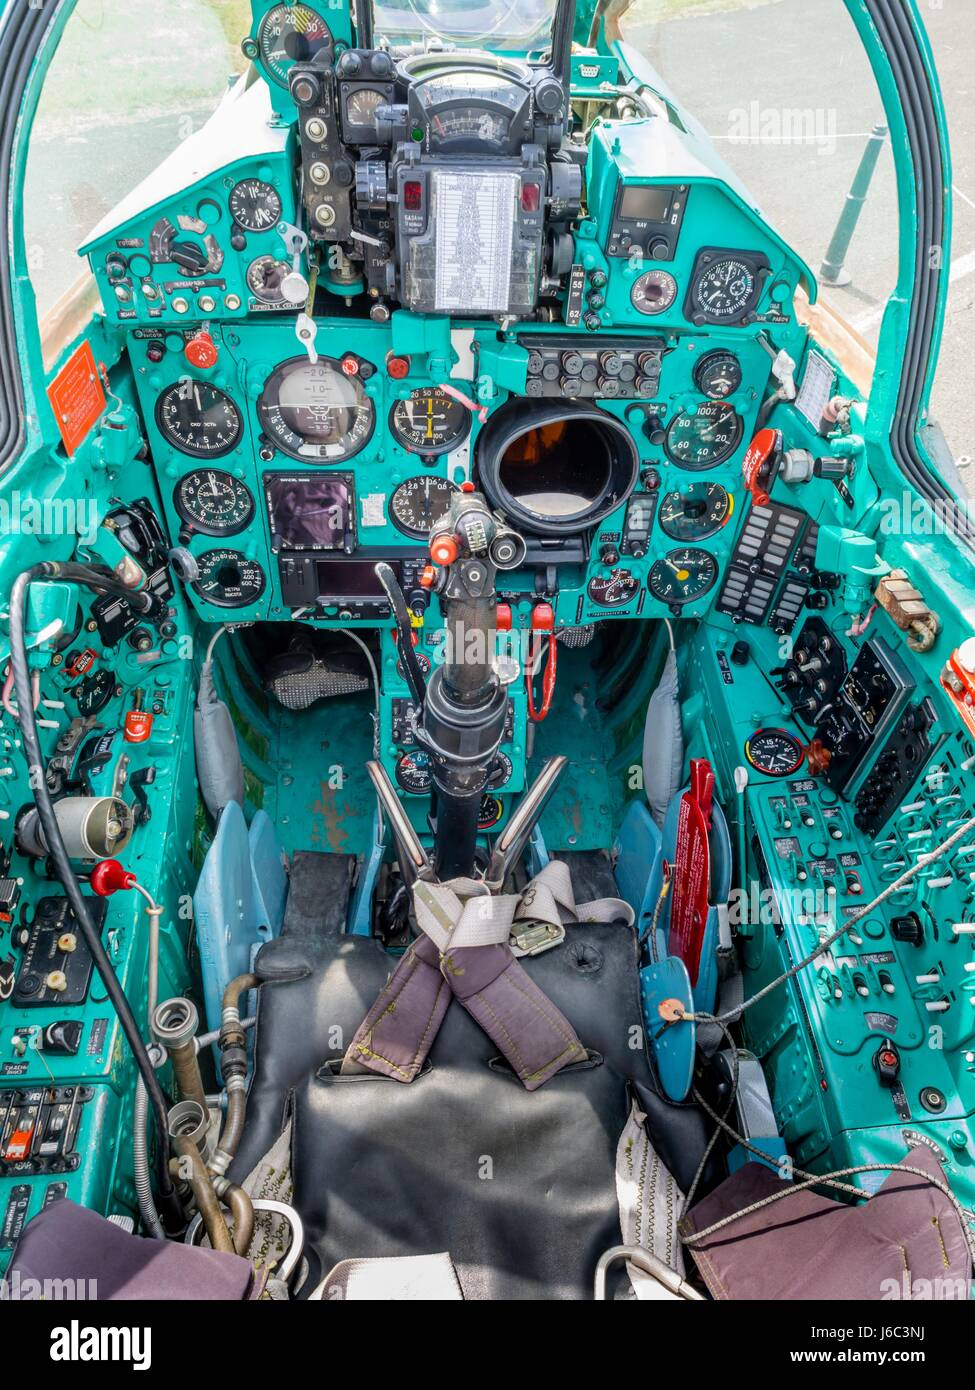 Mig 21 Cockpit Stock Photos & Mig 21 Cockpit Stock Images - Alamy